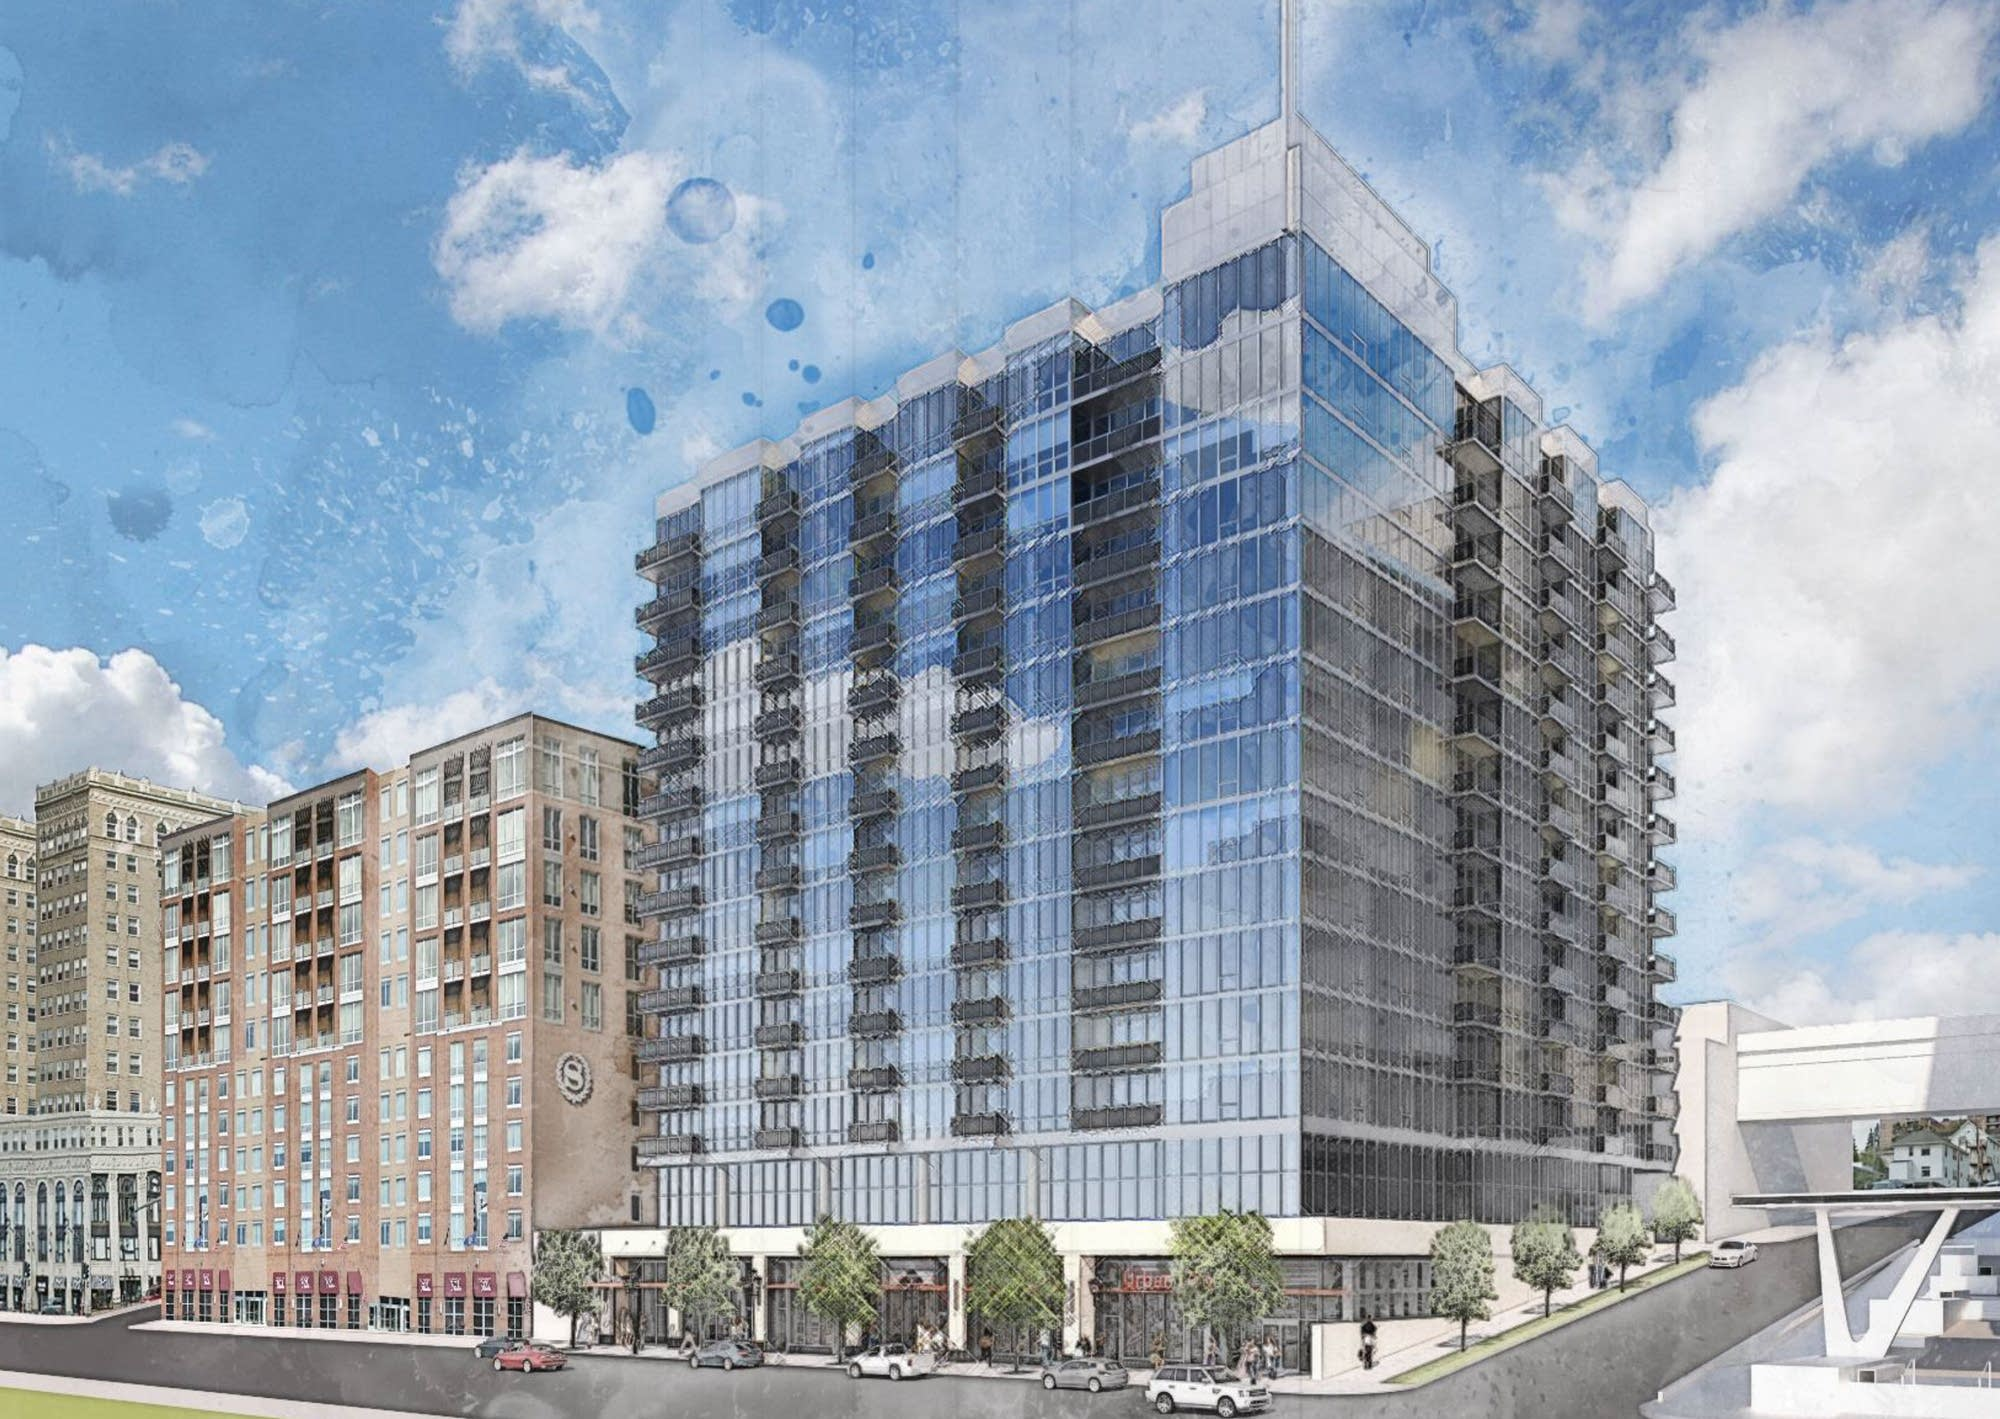 An image of the planned $75 million Lakeview apartment building